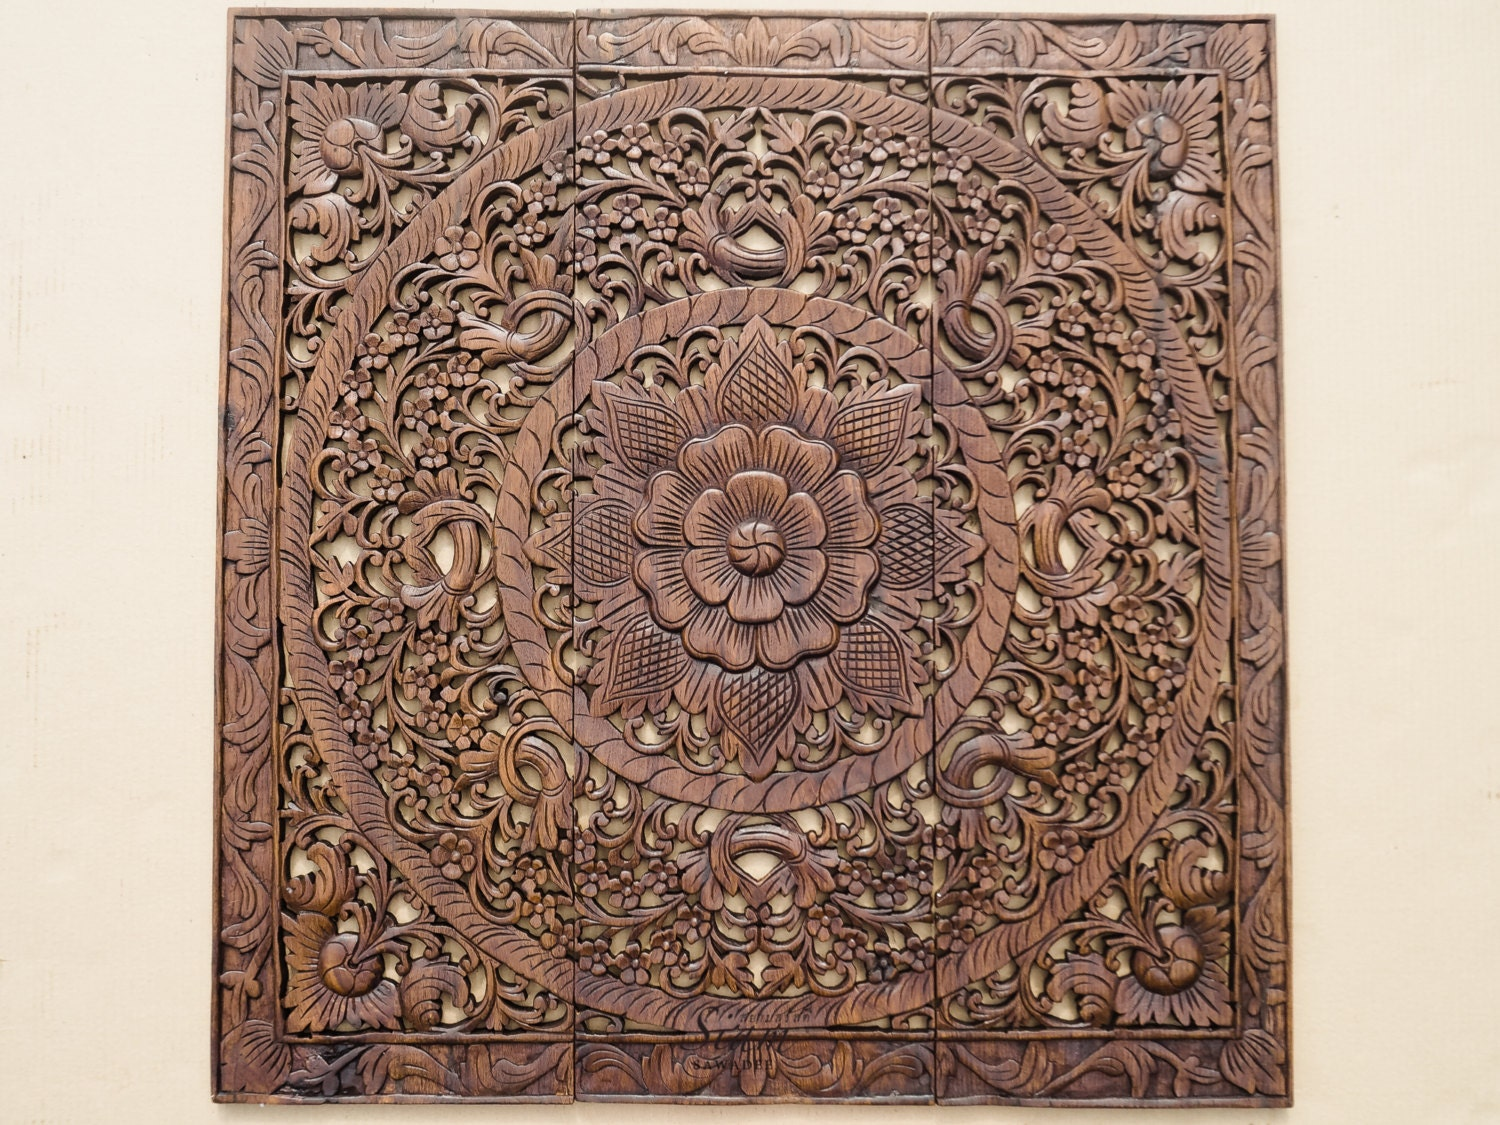 Wall art decor carved wood panel asian home by siamsawadee - Wood panel artwork ...